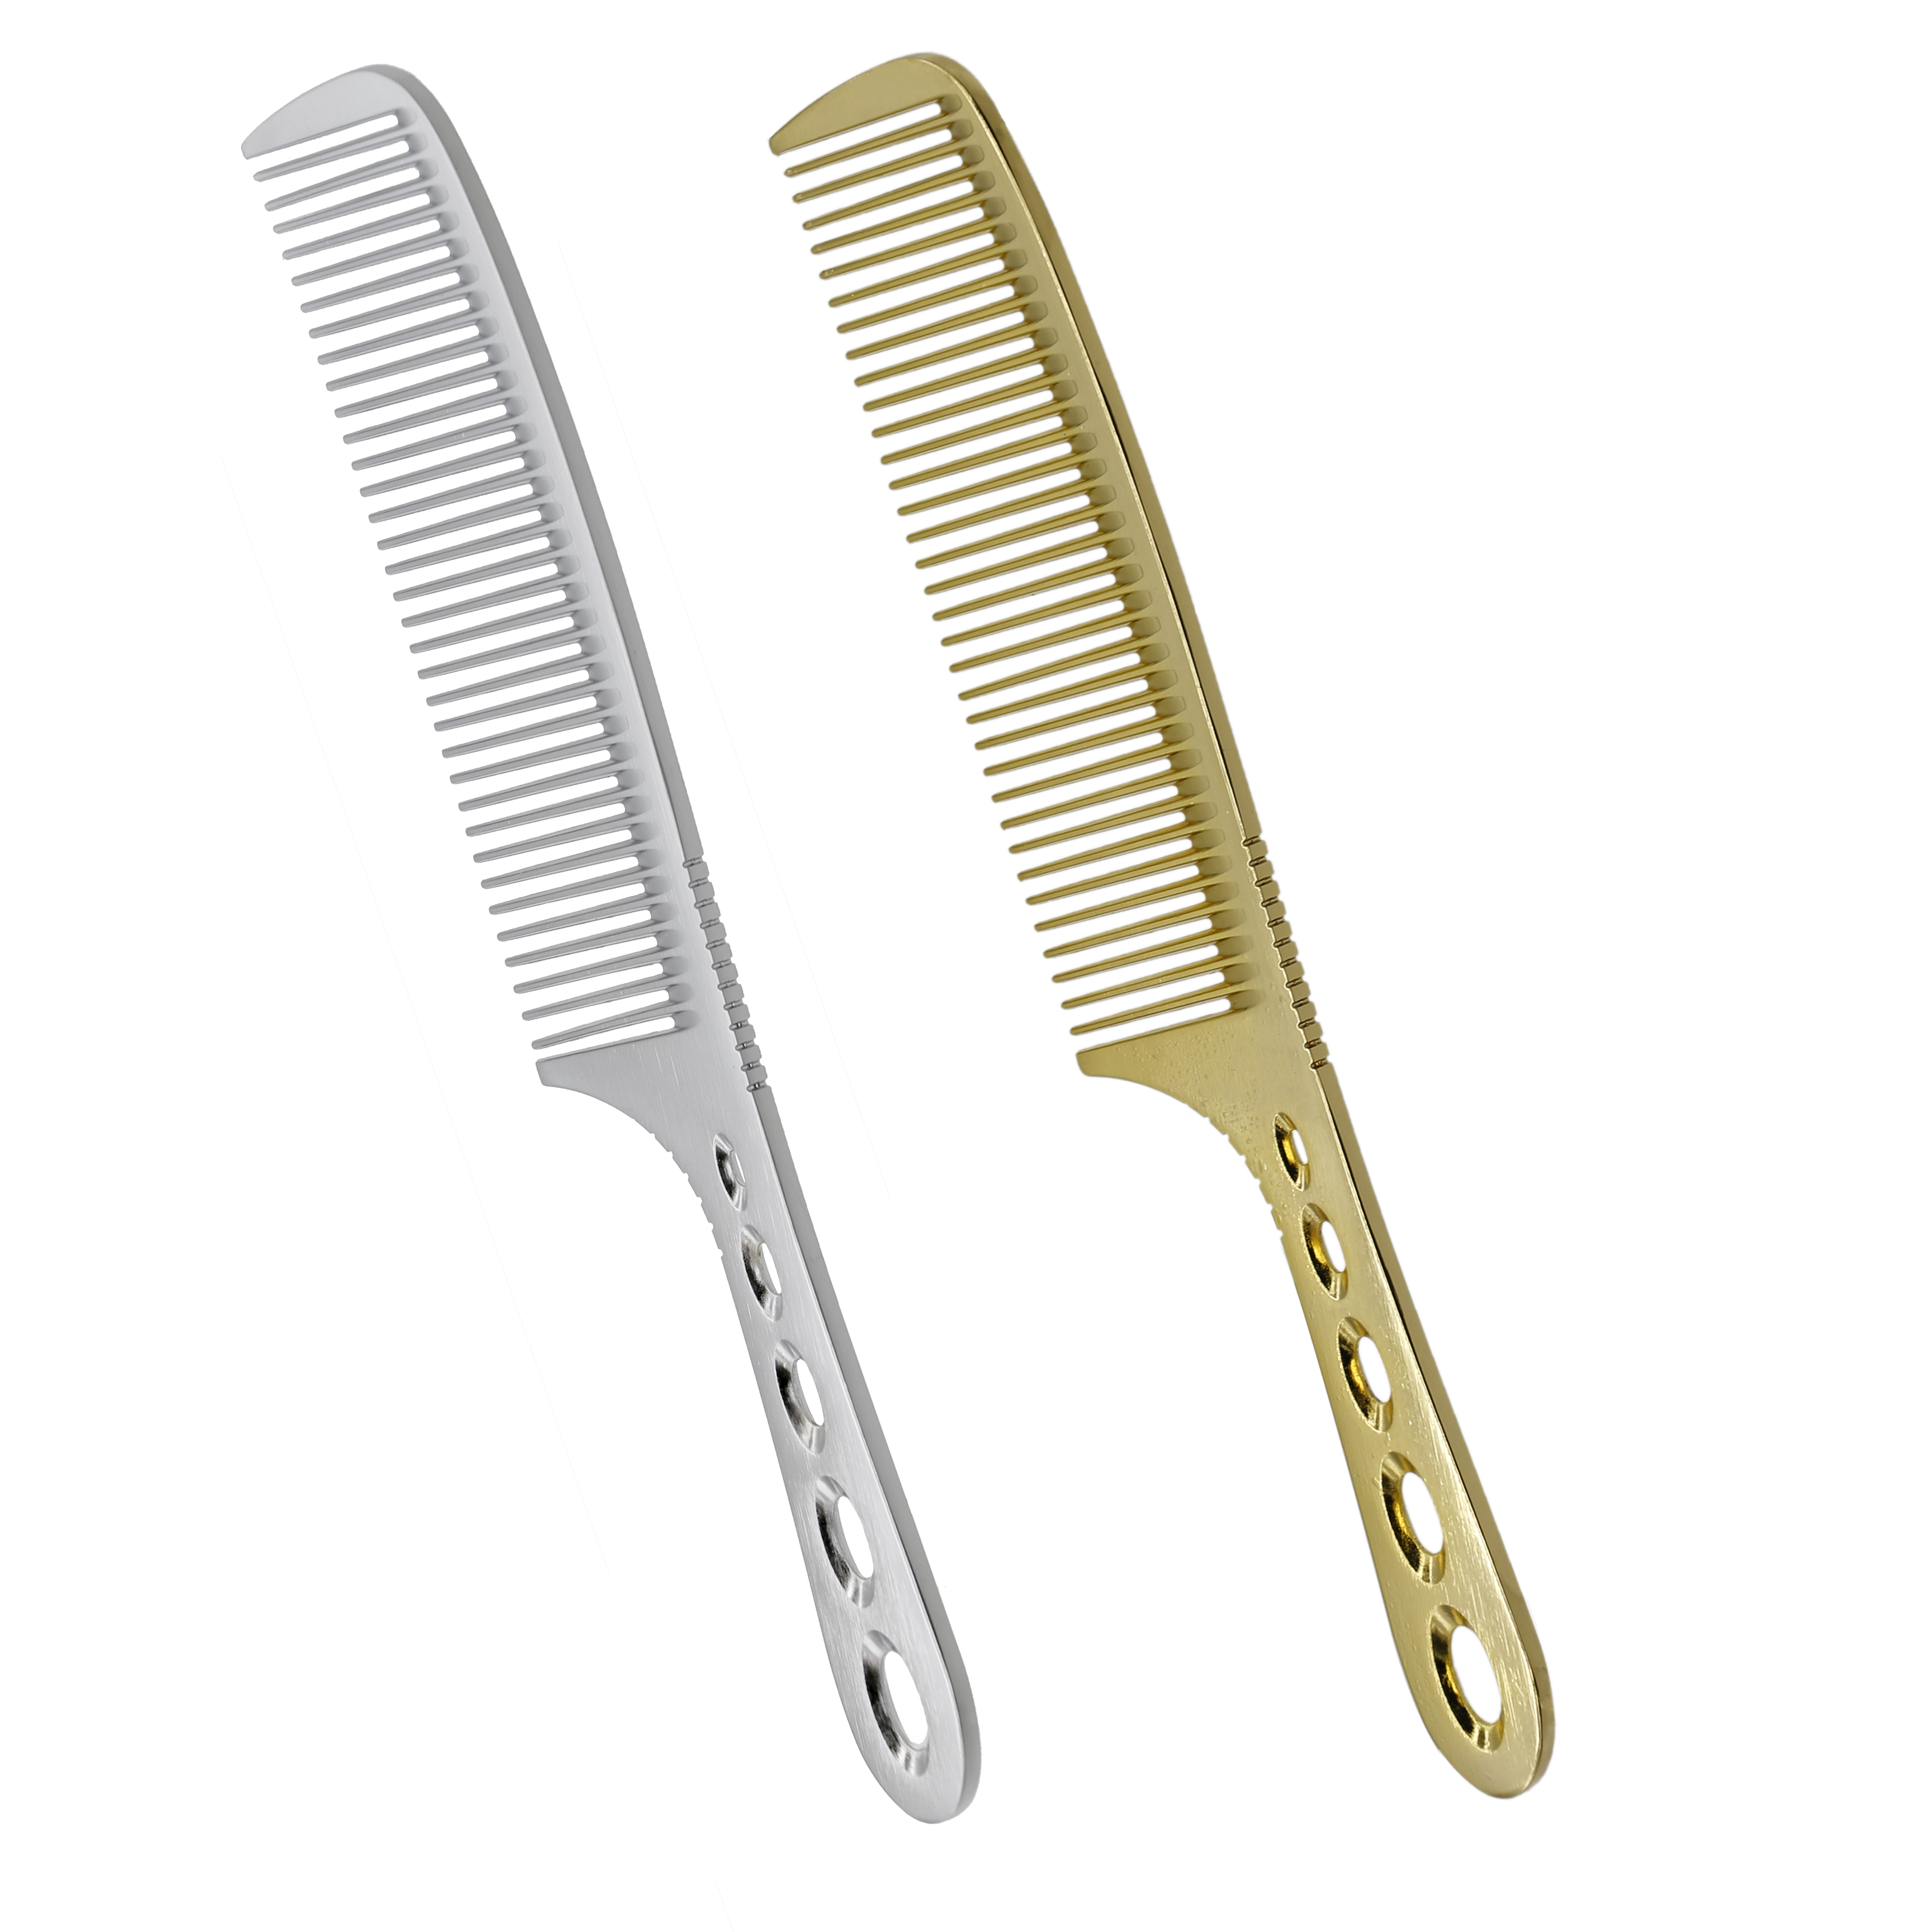 1 Piece High Quality Titanium Men Haircut Comb Durable Metal Alloy 19 cm Hairdressing Men Comb Barber Styling Tools Anti Static